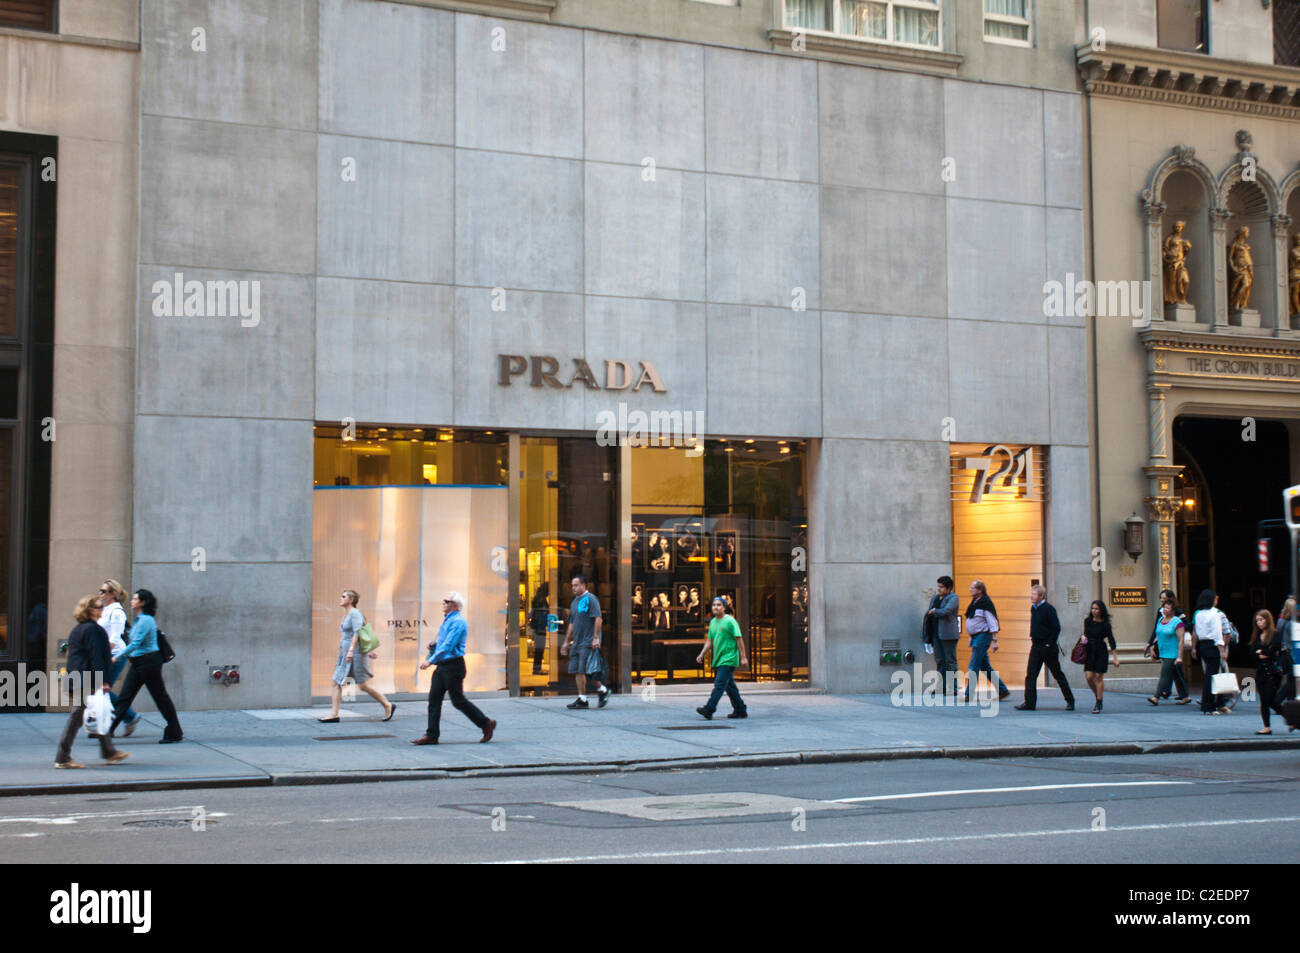 fashion designers top fashion designers and brands best new york designers Prada luxury fashion designer store at Fifth Avenue, Manhattan, New York  City, USA, shop, fashion, brand, chic, popular, exclus